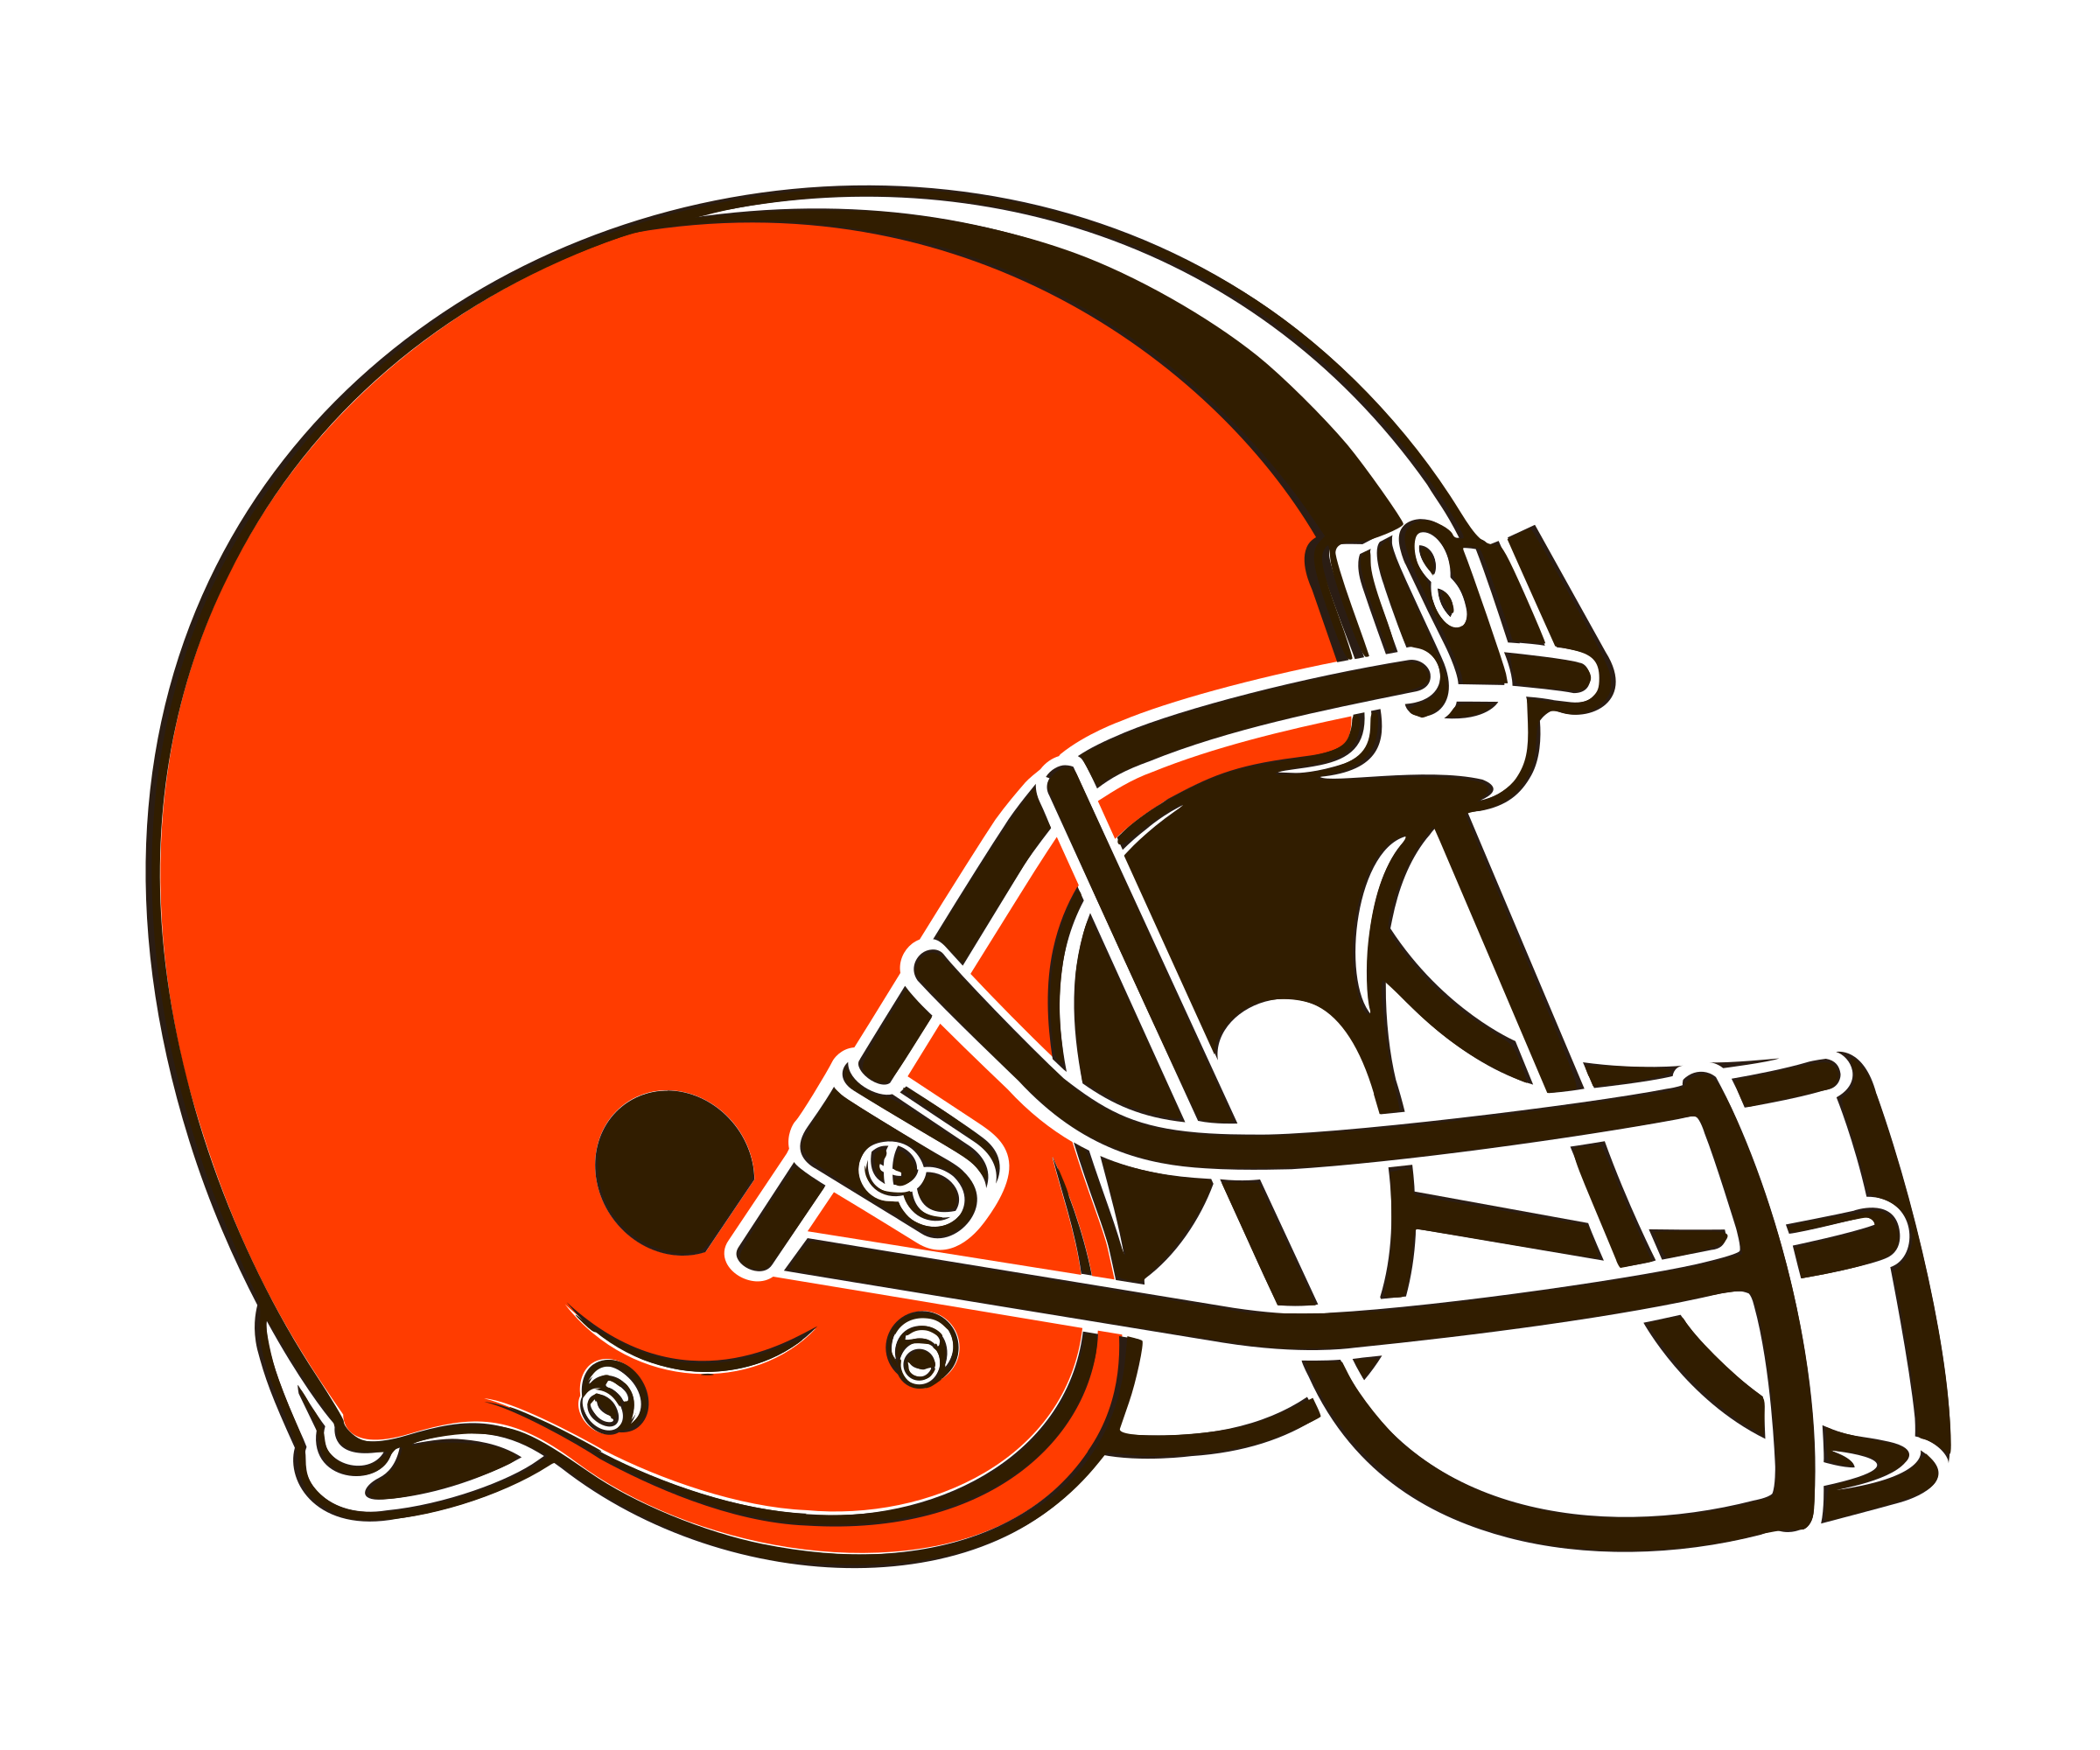 Cleveland Browns - .18% interaction rate - twitter(vs. 0.06% via league average)